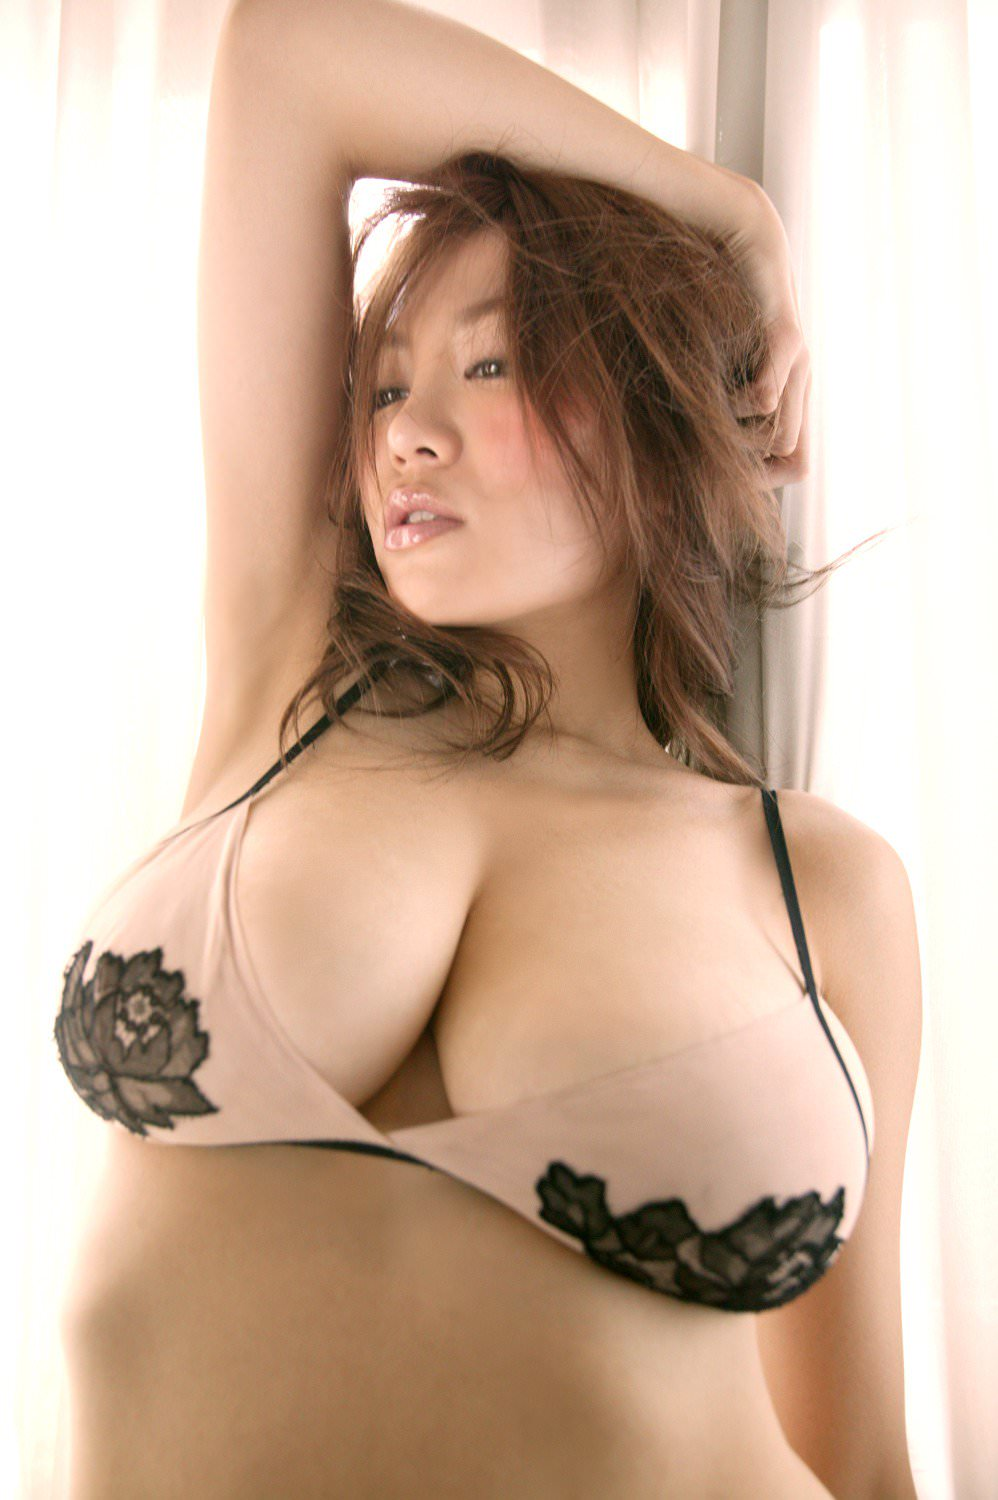 You science. Yoko matsugane recent nude boob photo pity, that